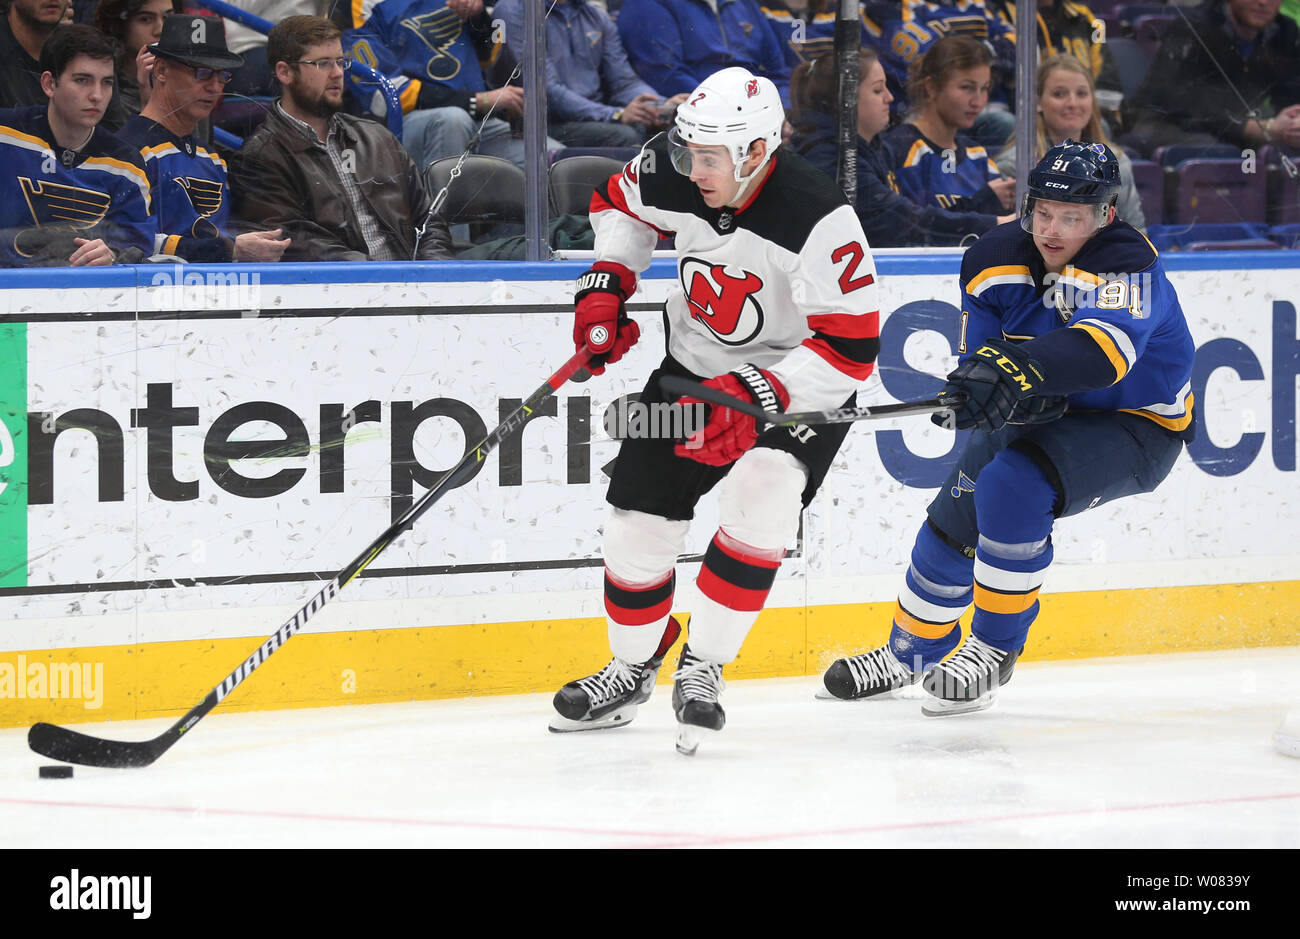 new concept 18467 29283 St. Louis Blues Vladimir Tarasenko of Russia uses his stick ...